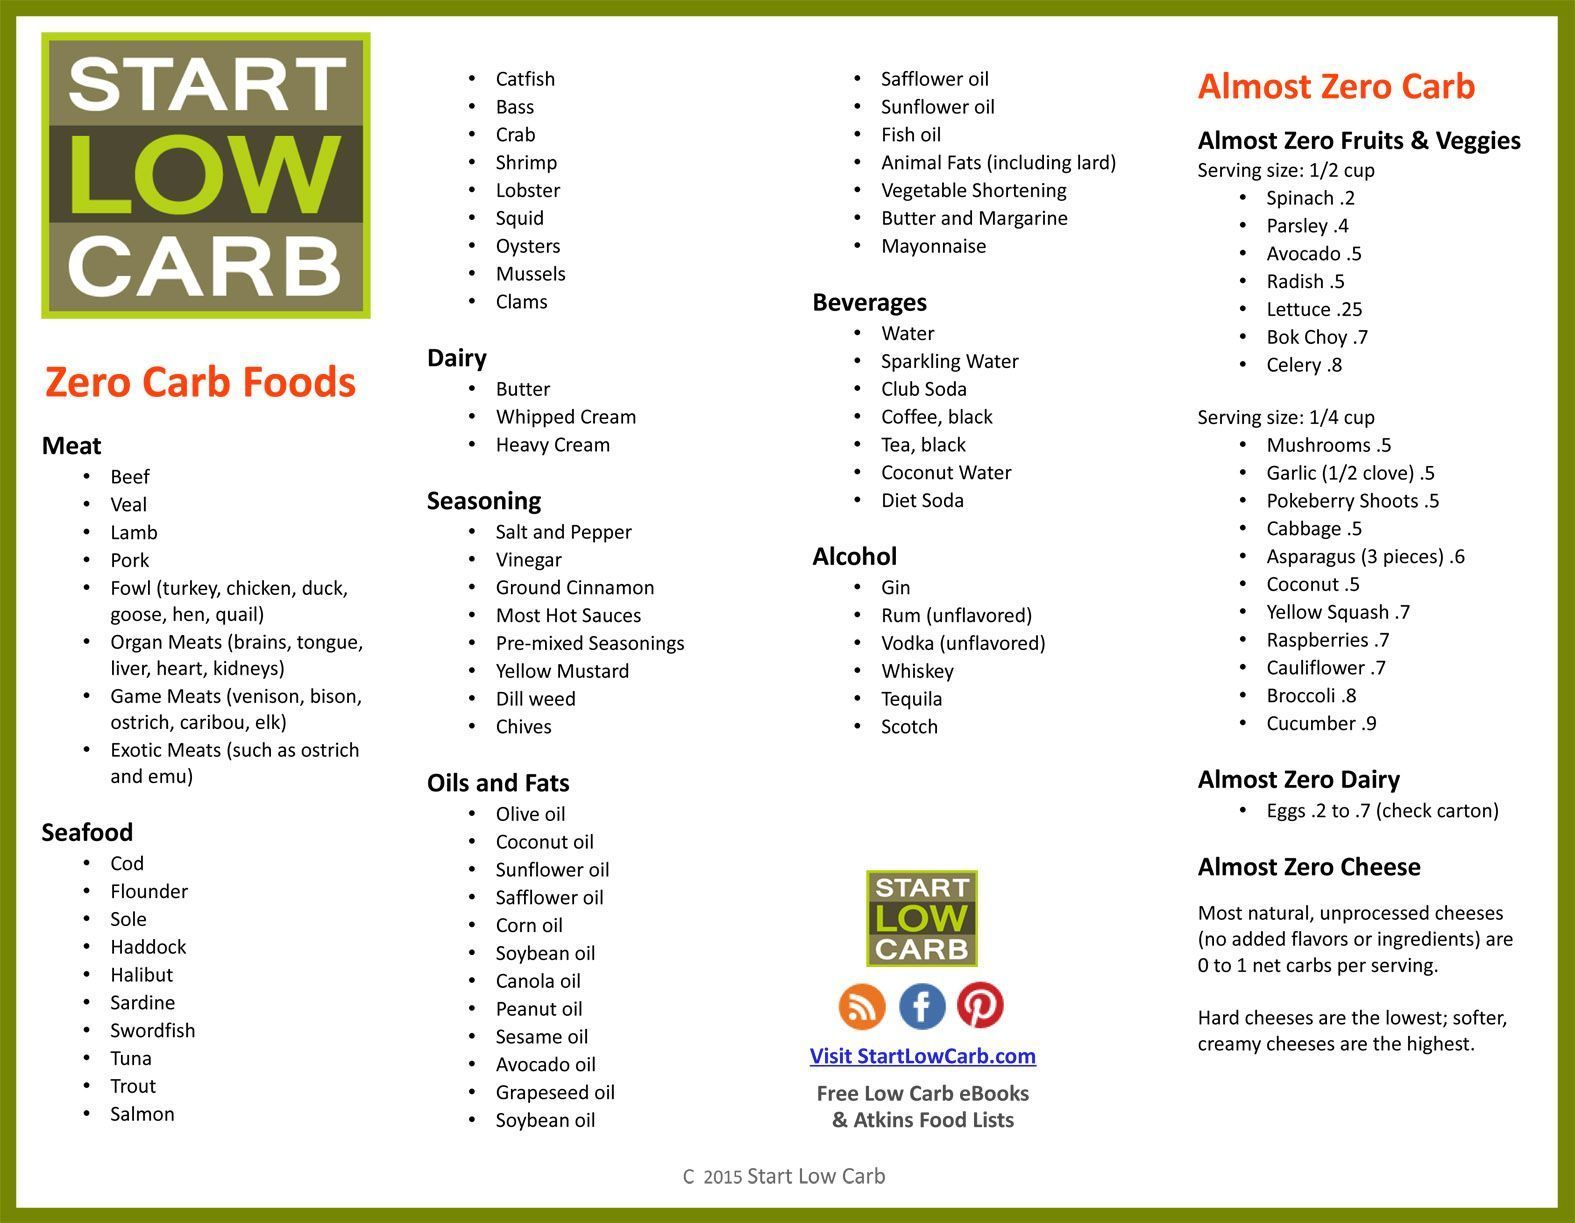 Image Result For 120 Zero Carb Foods For Atkins Induction And - Free Printable Atkins Diet Plan